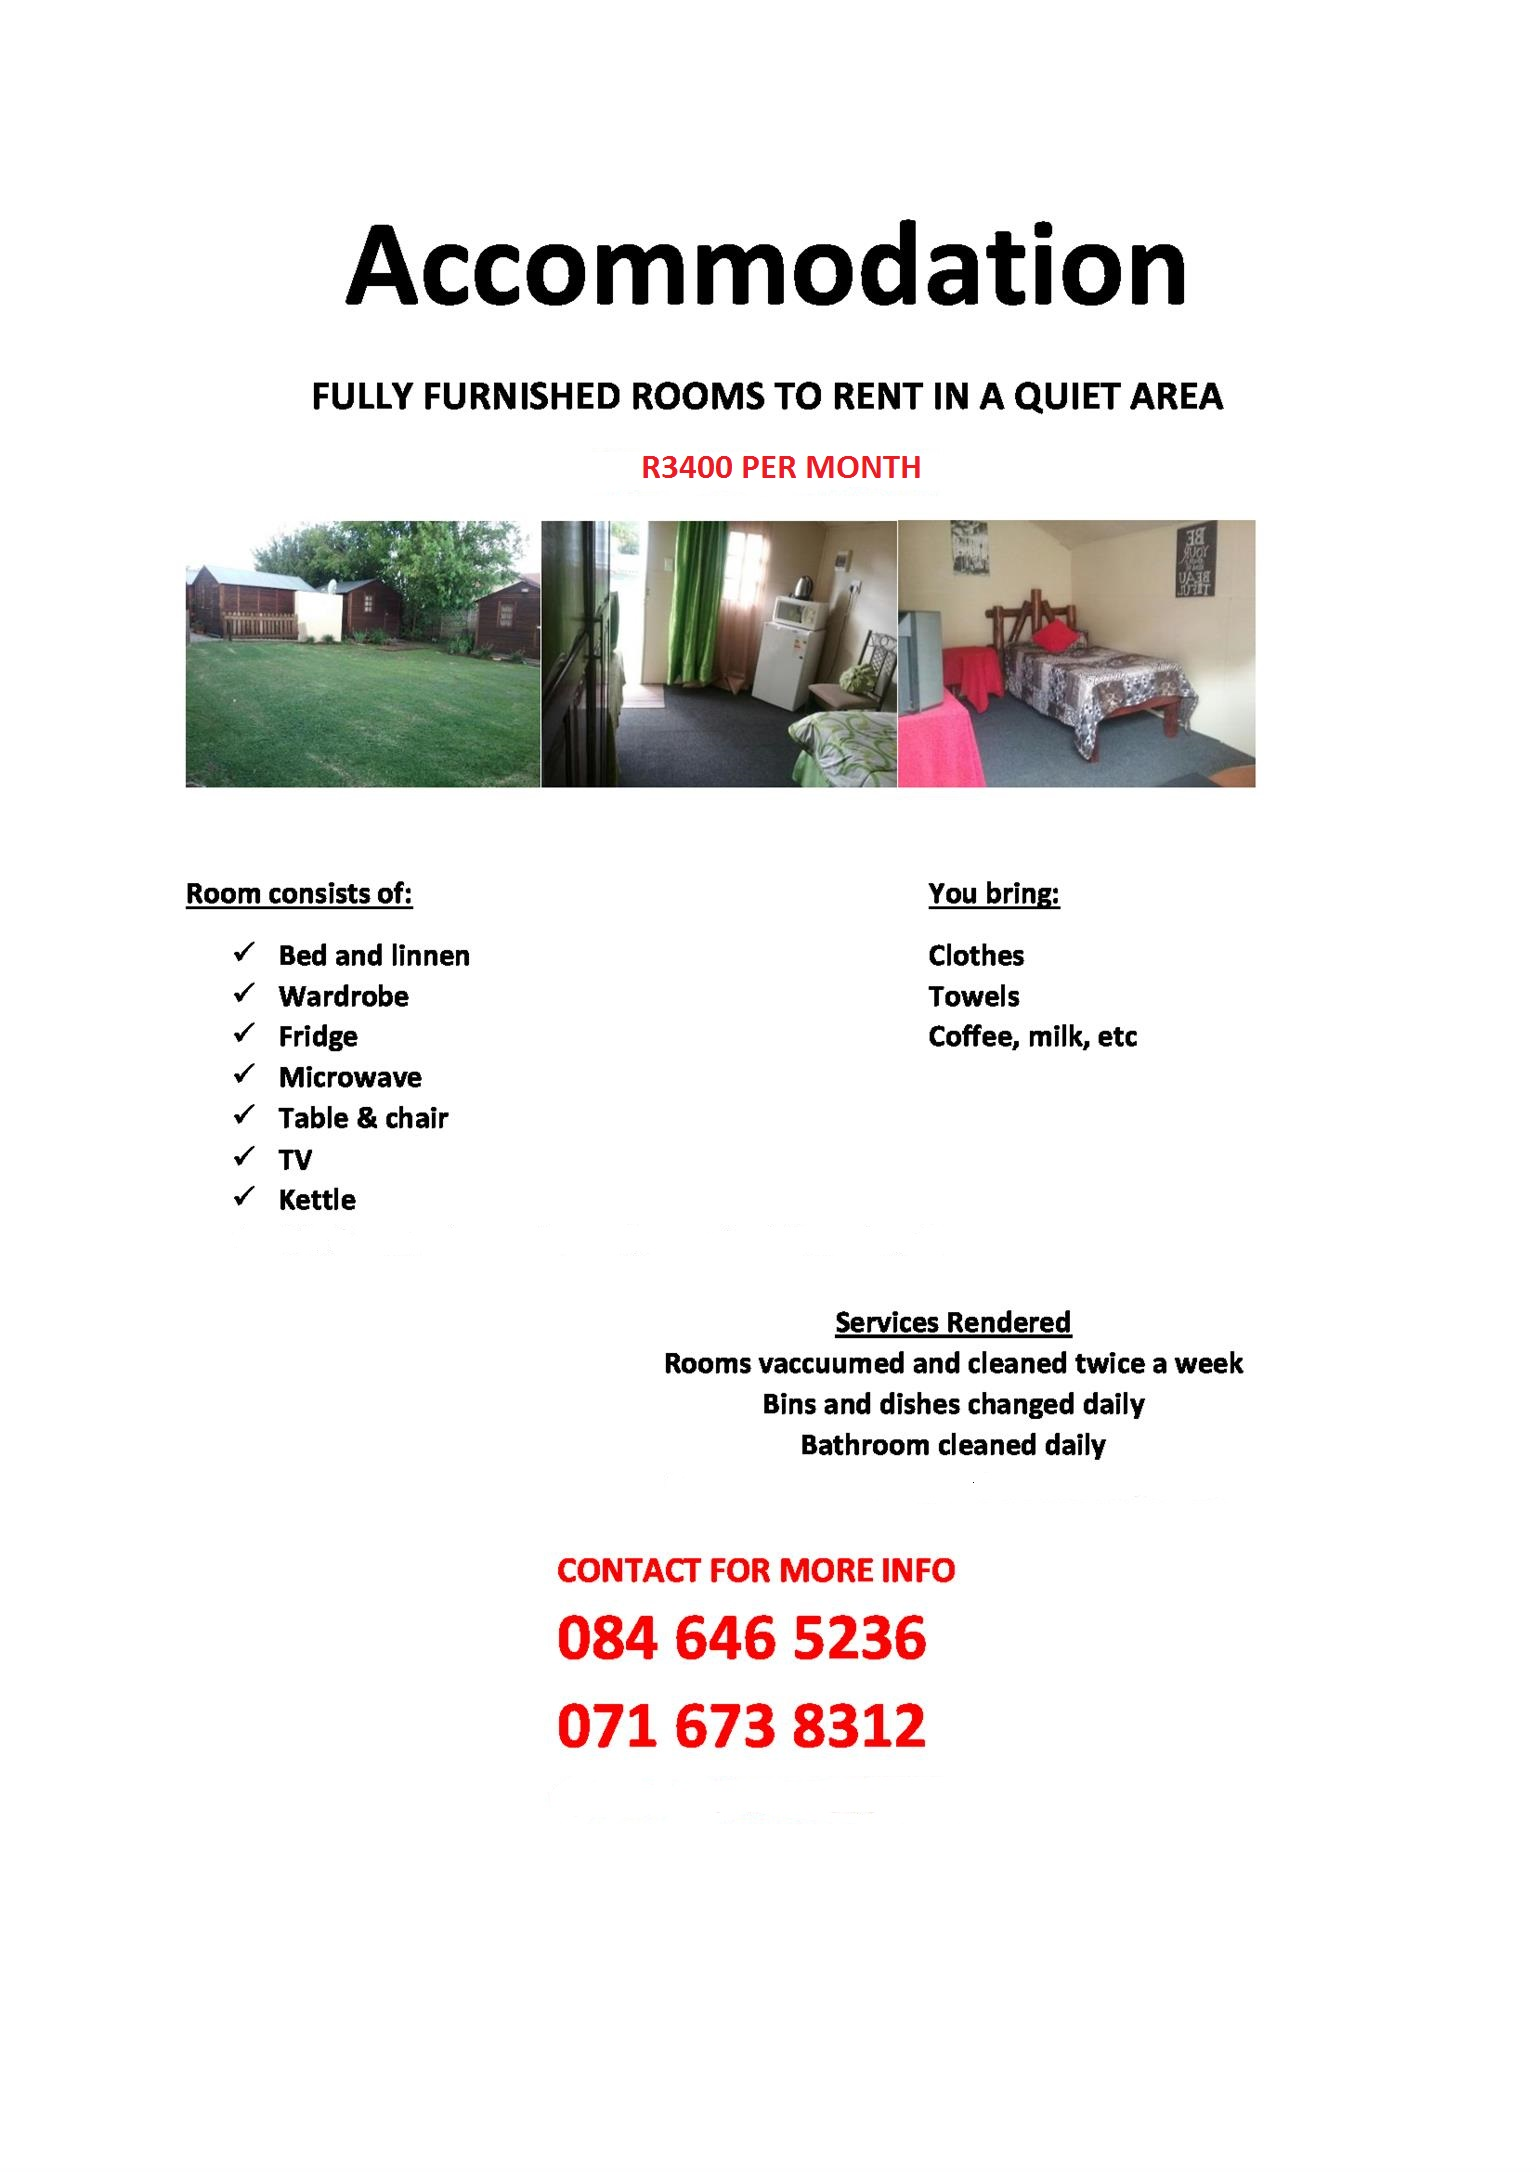 Rooms to rent in a quiet area